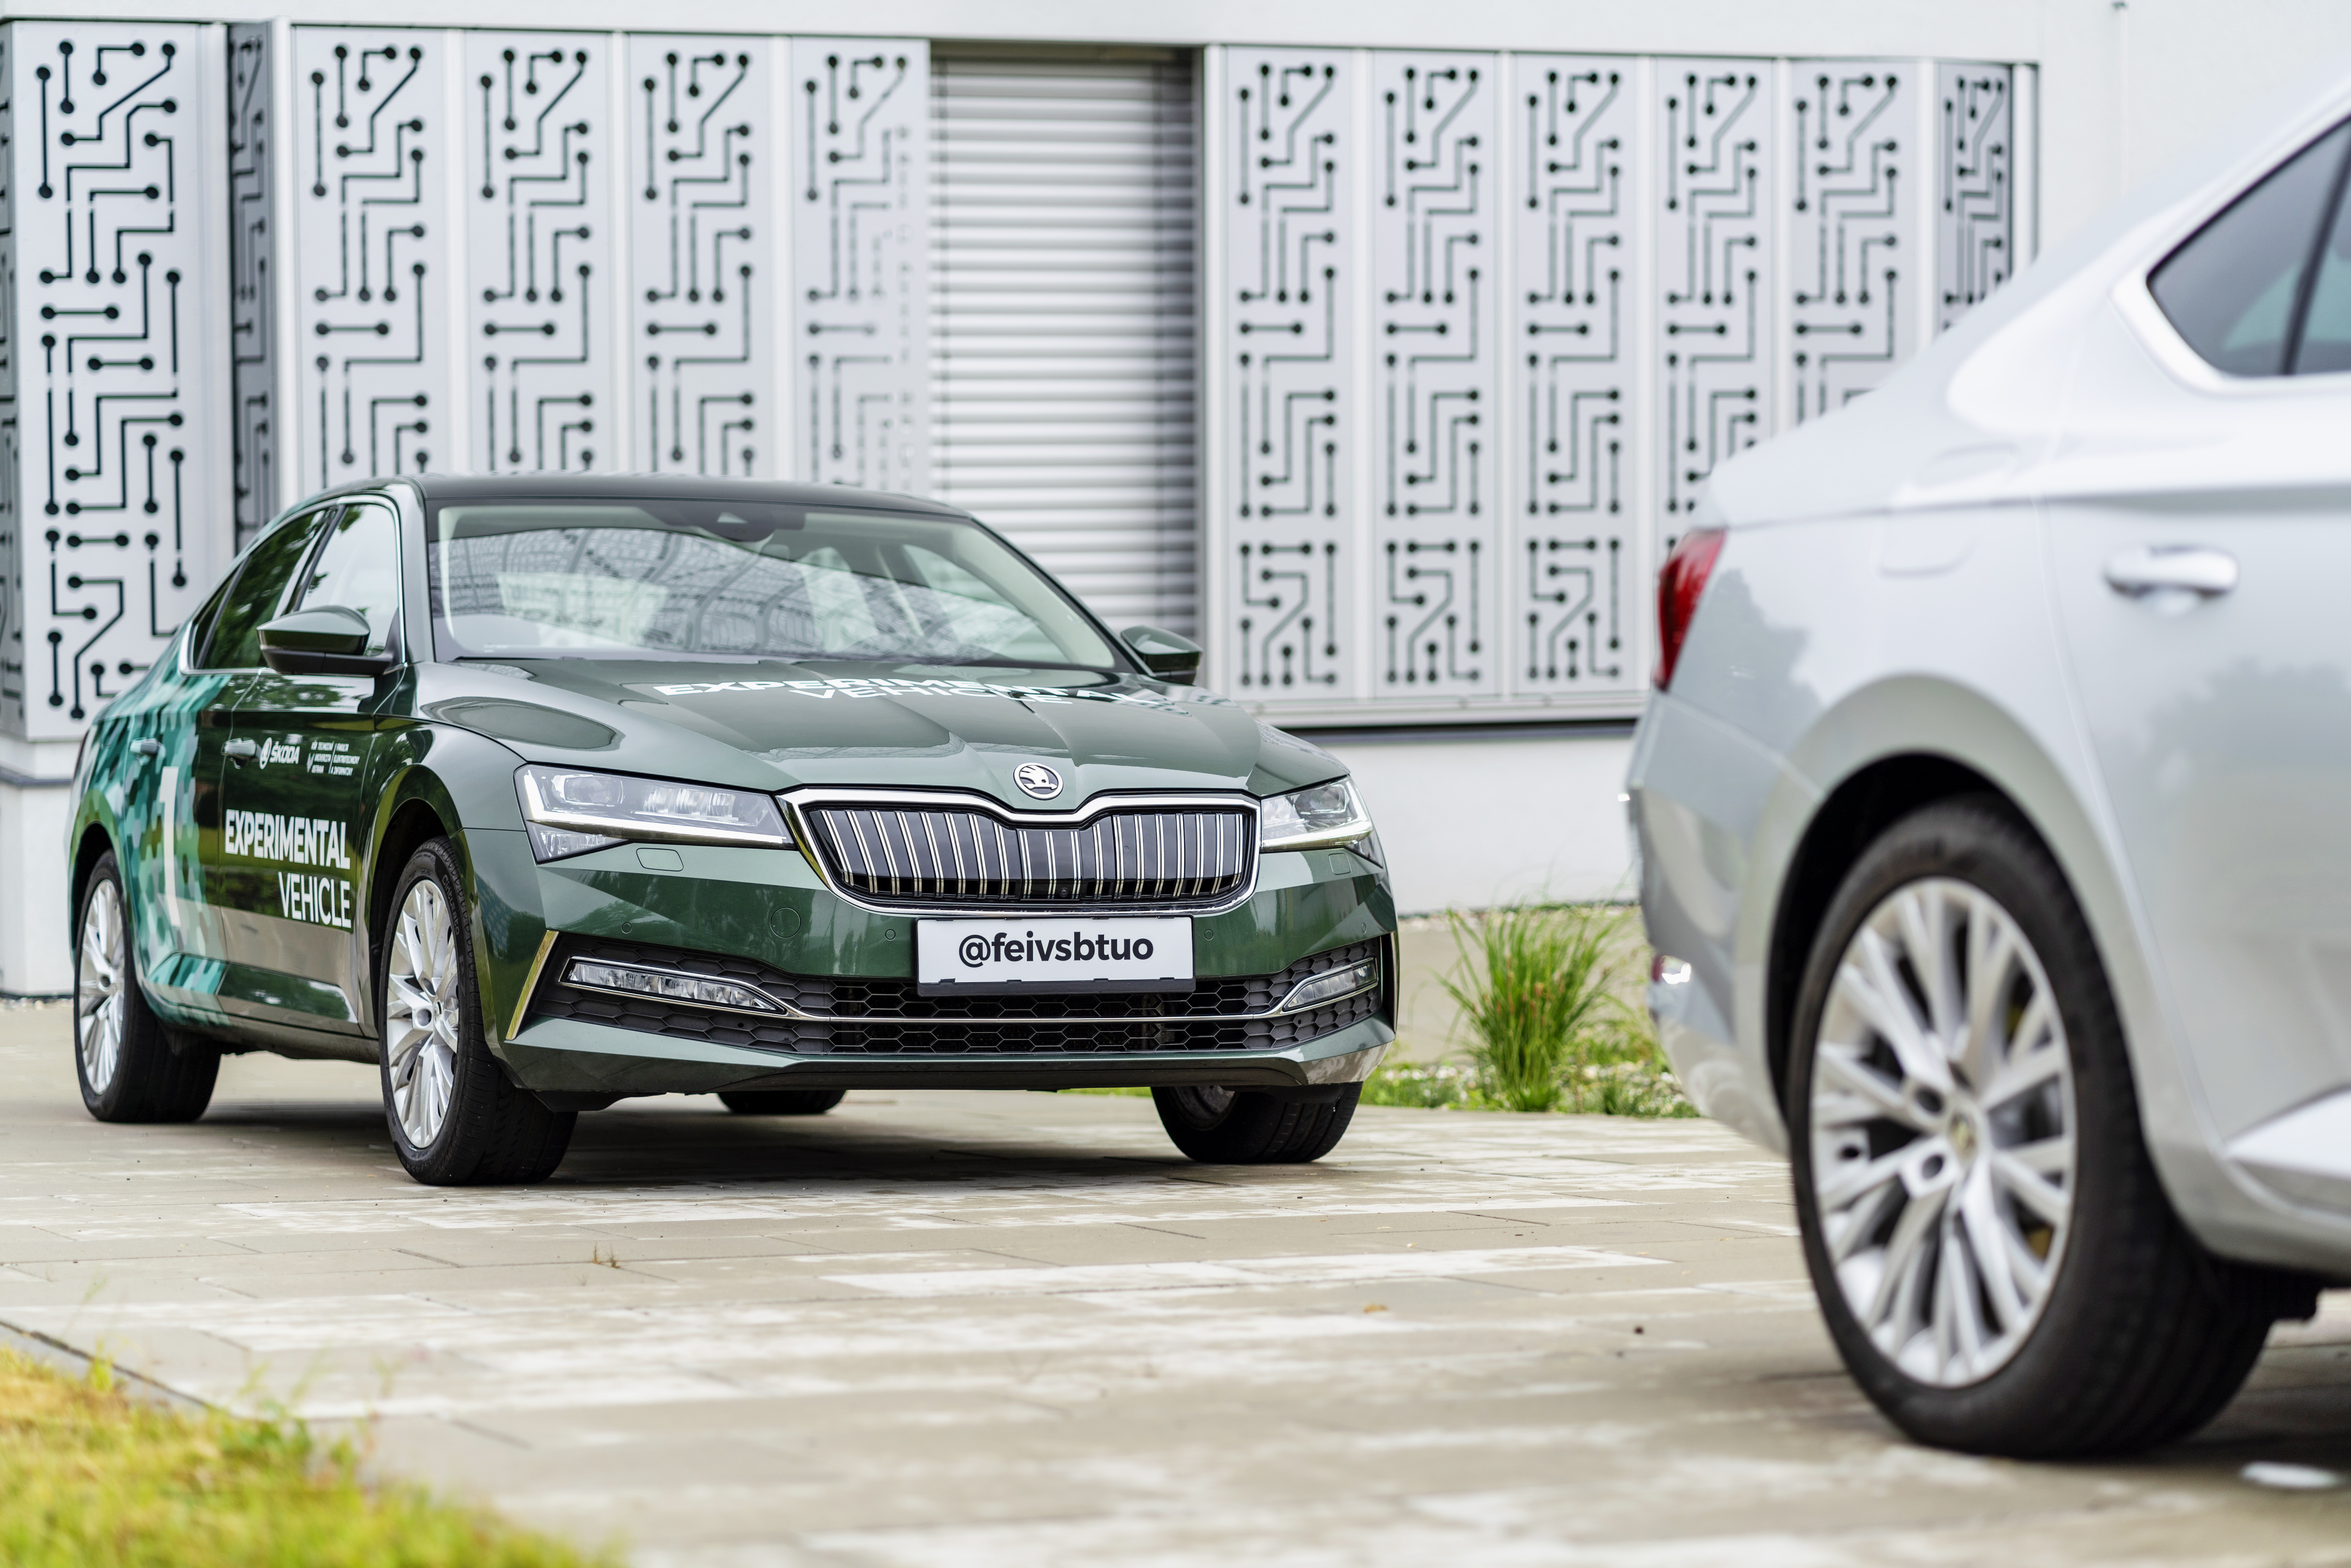 'Follow the Vehicle': SKODA AUTO and the VSB - Technical University of Ostrava collaborate on automated car convoy project - Image 2